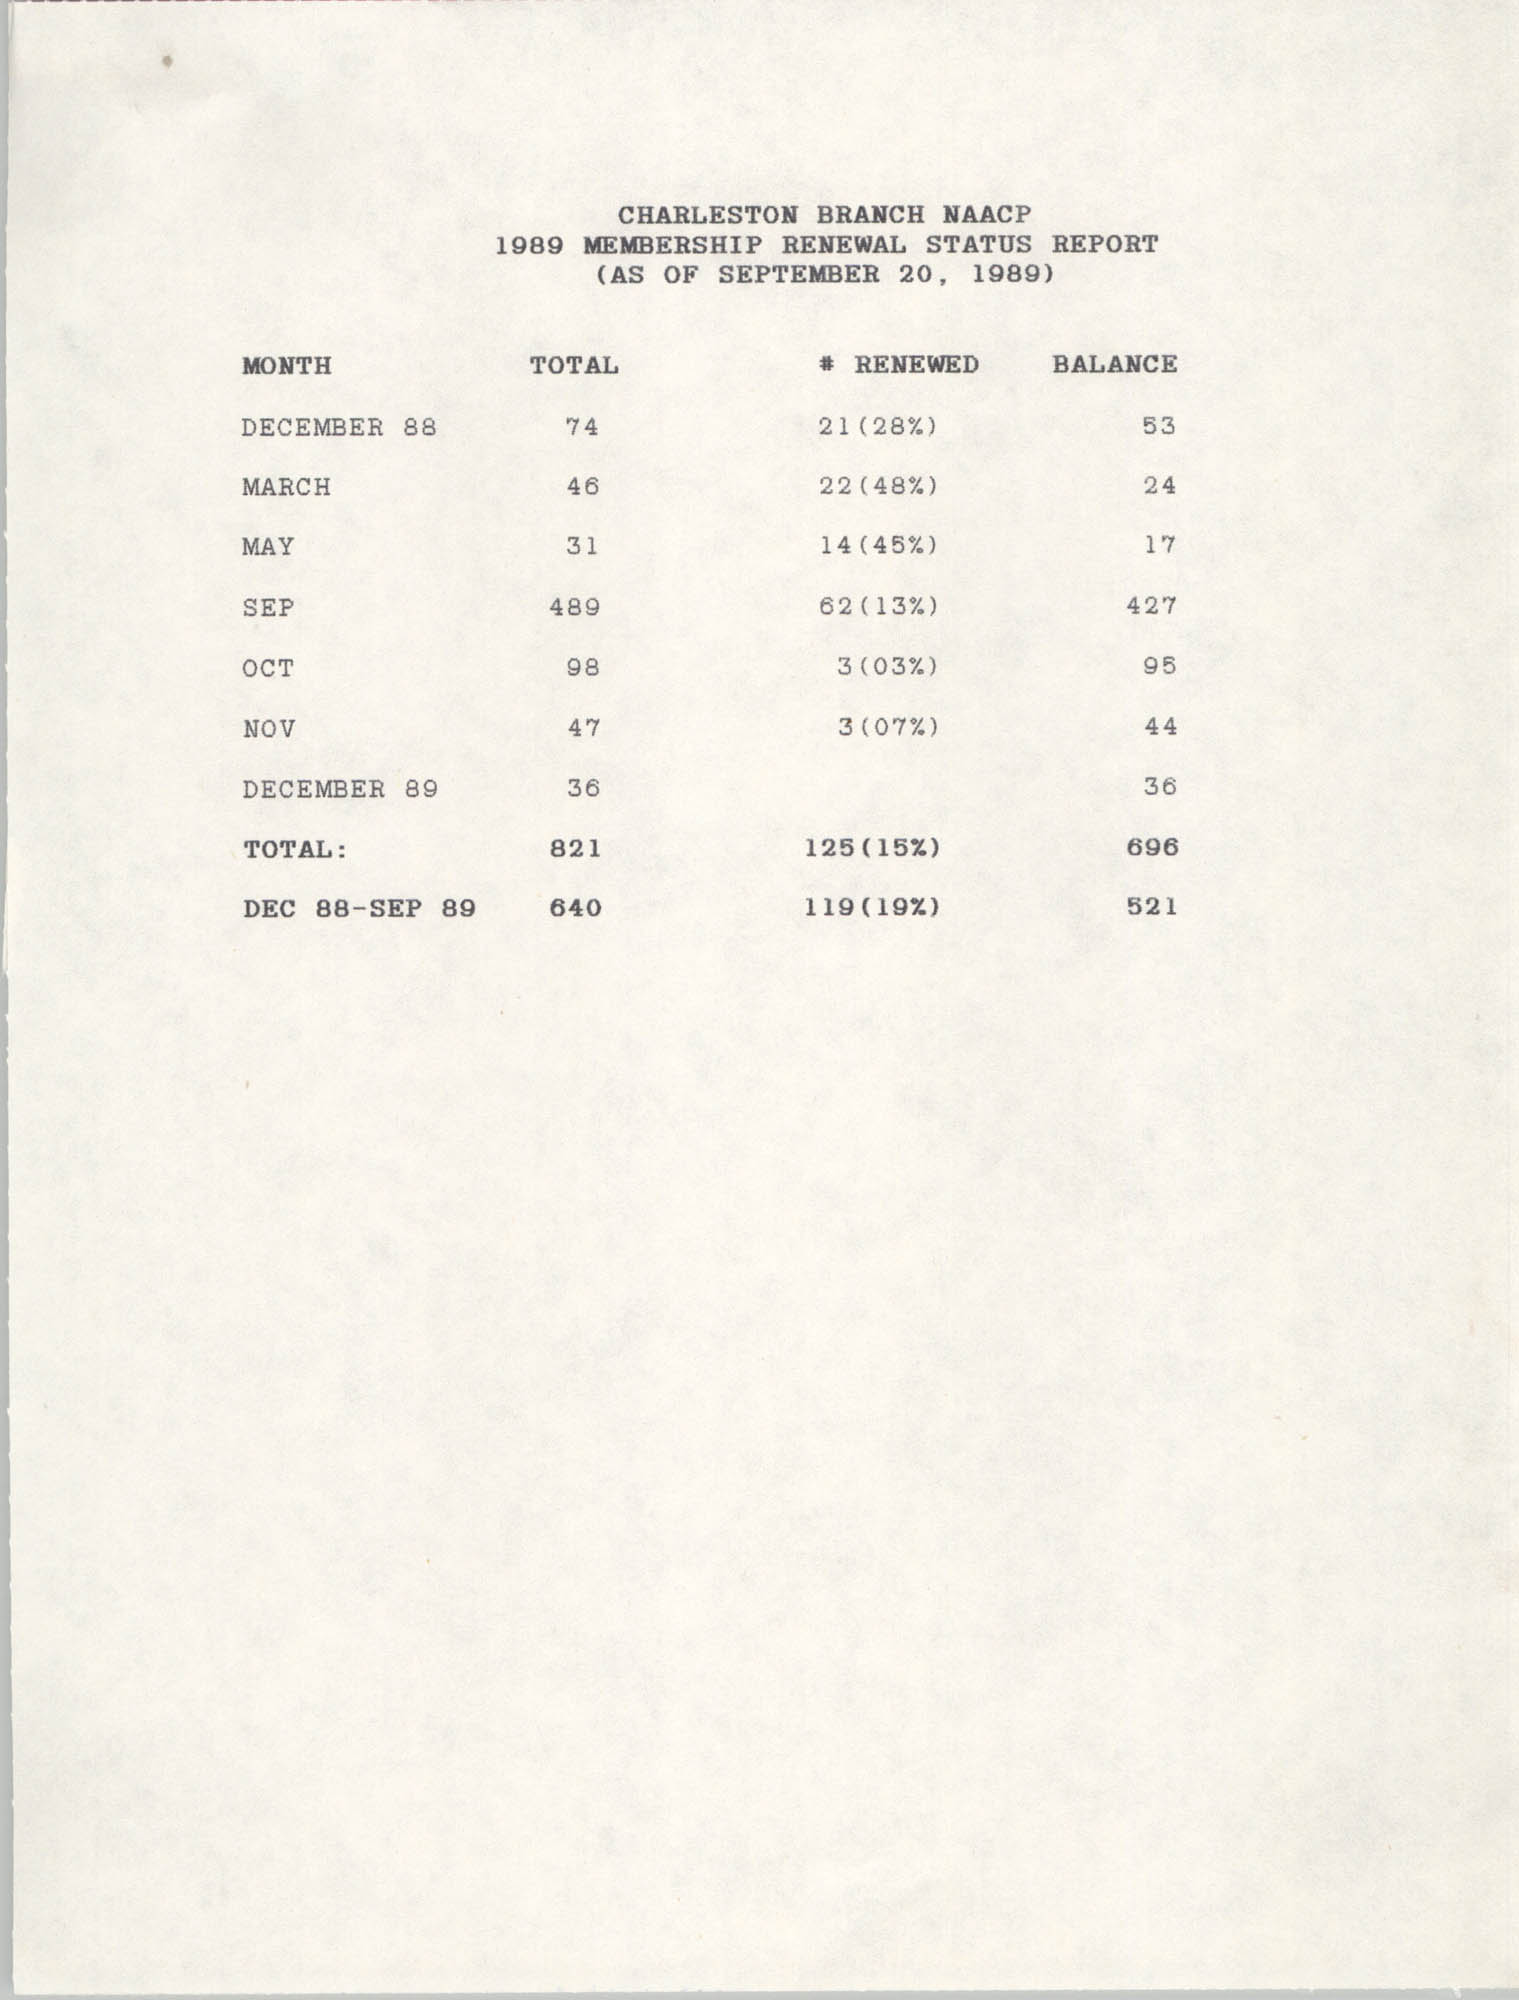 Membership Renewal Status Report, National Association for the Advancement of Colored People, September 20, 1989